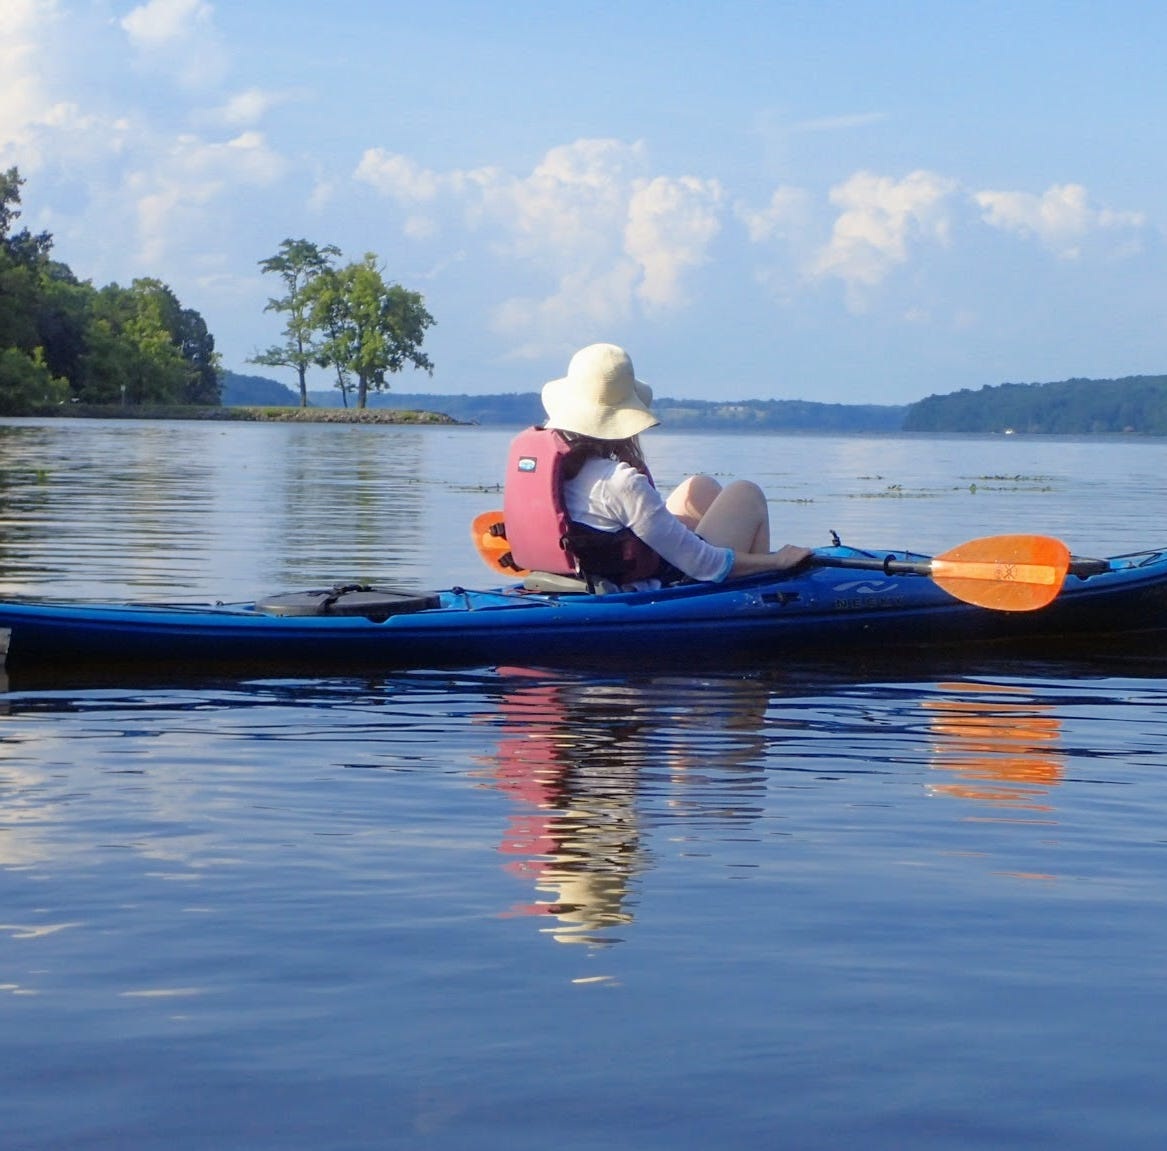 7 ways to get out on the Hudson River this summer: from kayaks to a Dragon Boat